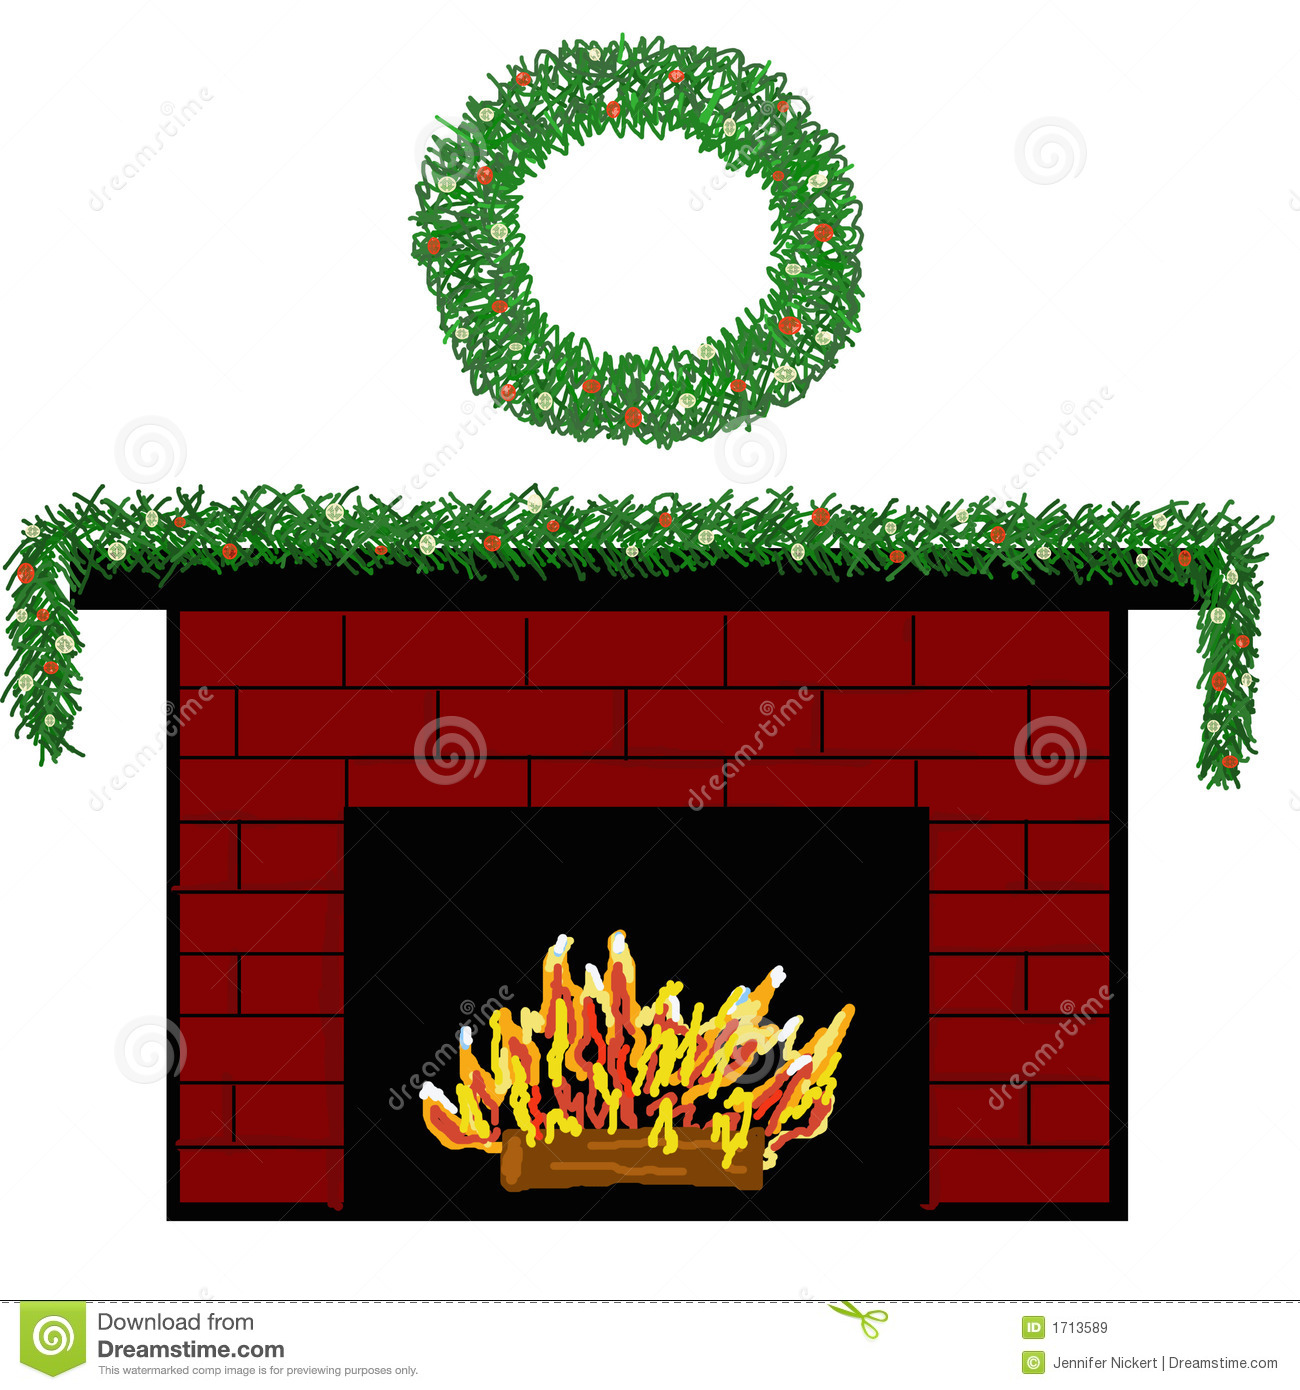 Brick Fireplace Clipart Fireplace Fire Clipart Holiday Fireplace